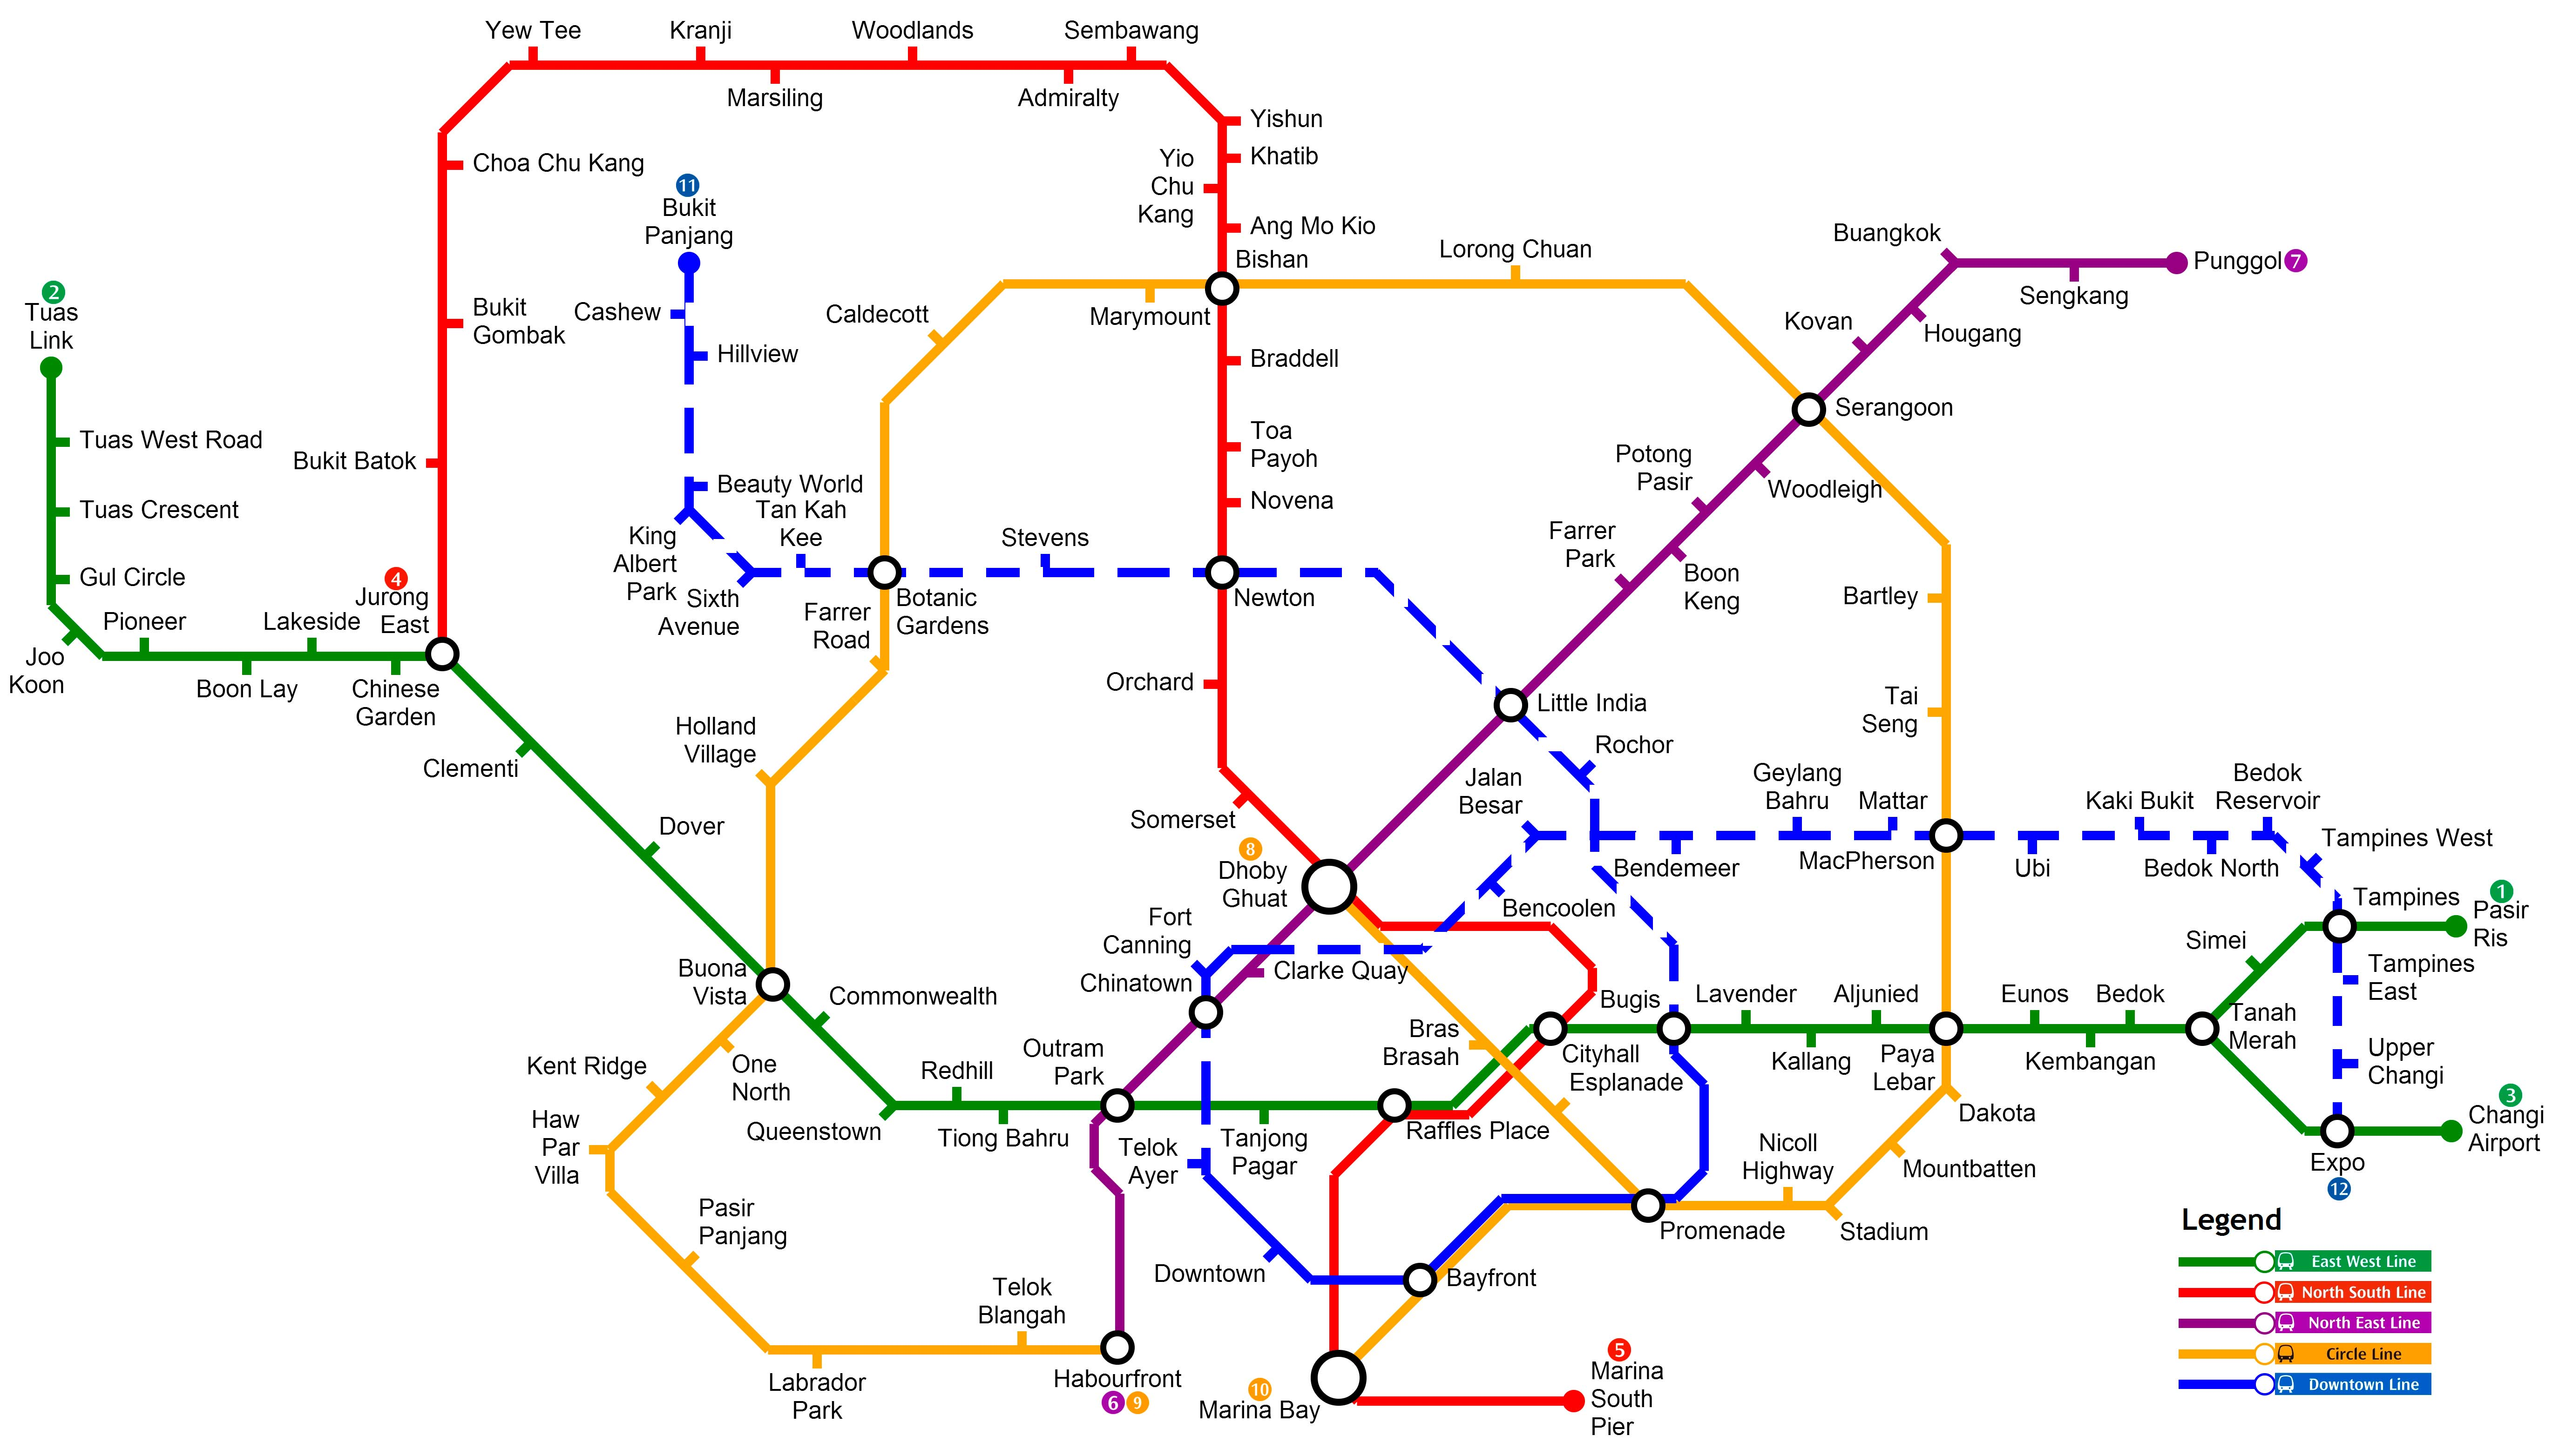 Singapore Subway Map 2014.Validation And Simulation Based Training Environment For The